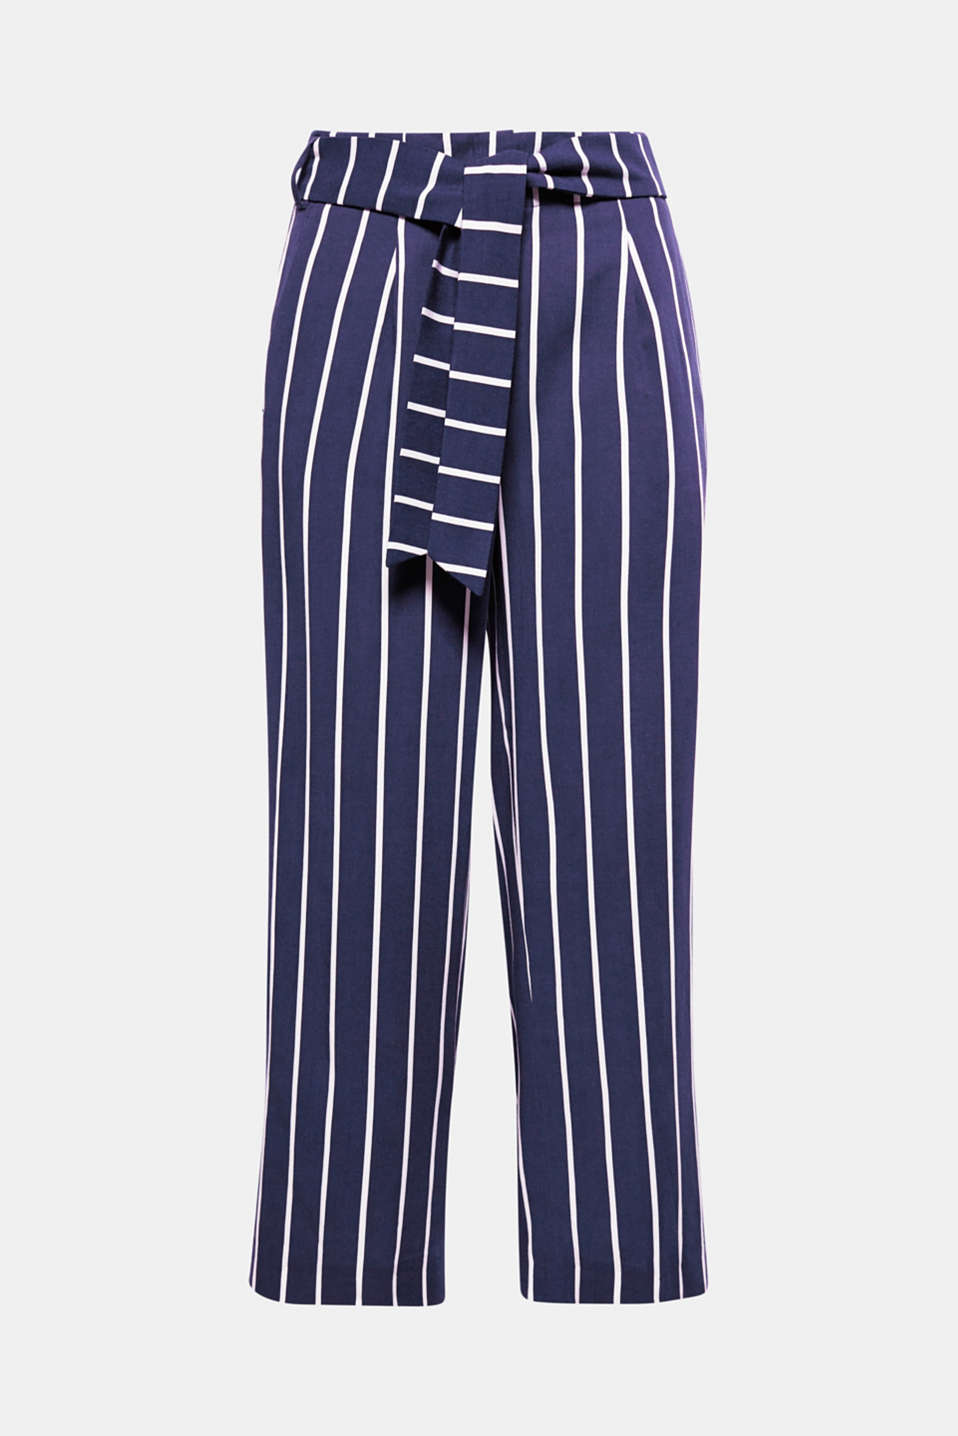 Airy, lightweight spring piece: The flowing fabric and wide cut make these distinctive striped culottes so very comfortable!